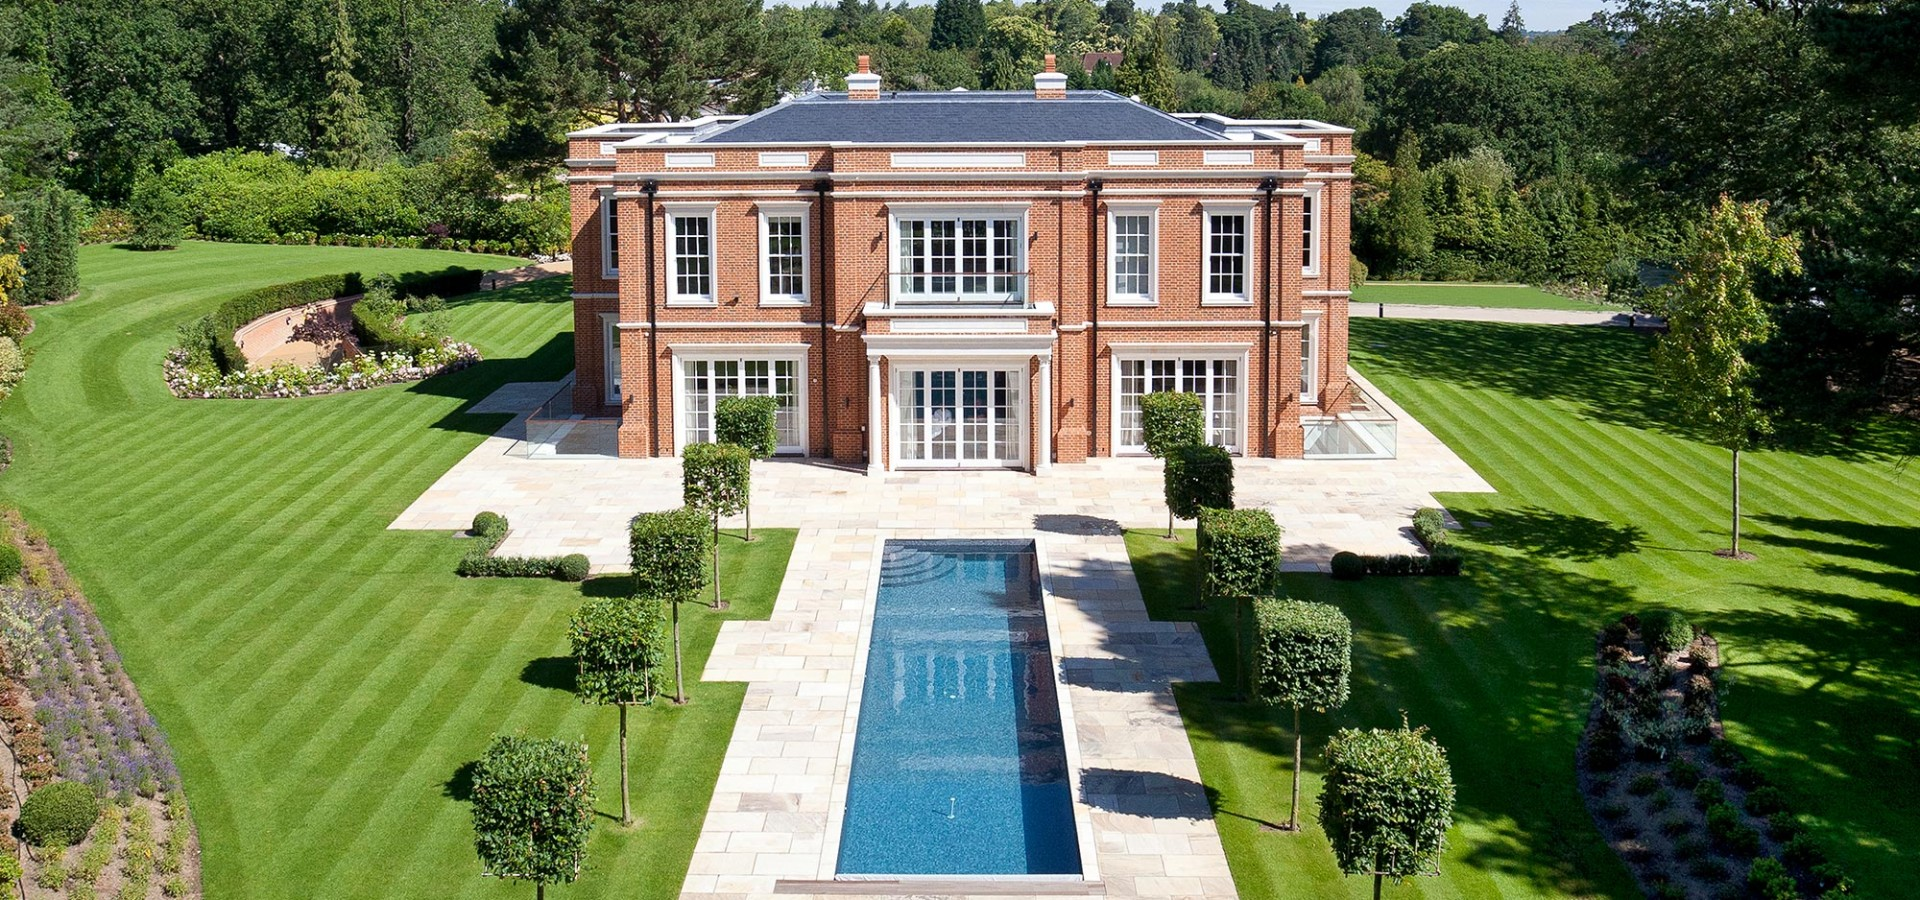 6 7 luxury properties st georges hill wentworth weybridge - House with swimming pool for sale scotland ...